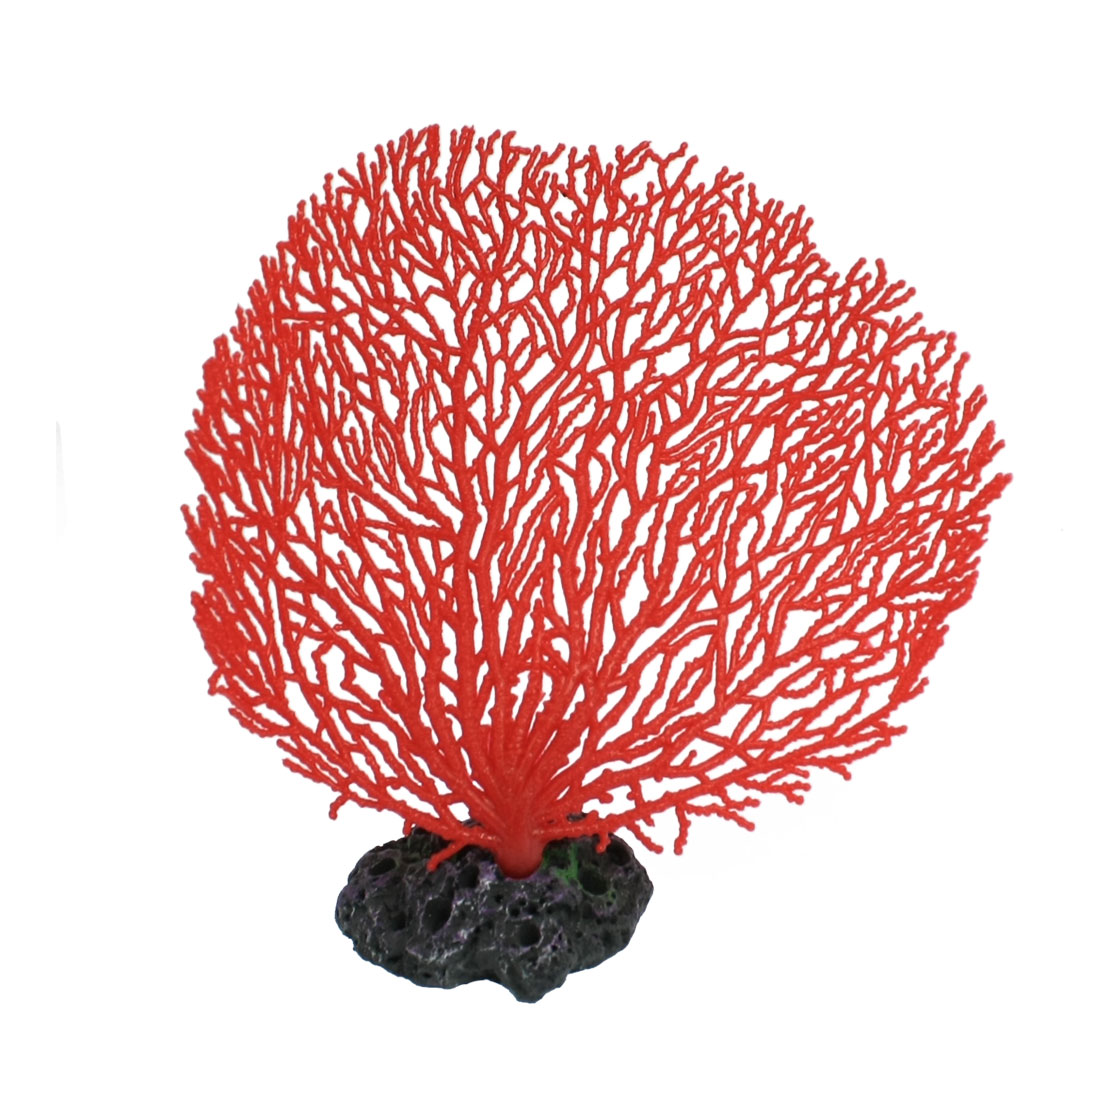 "Aquarium Plastic Coral Design Ornament Decoration Red 6.5"" High"